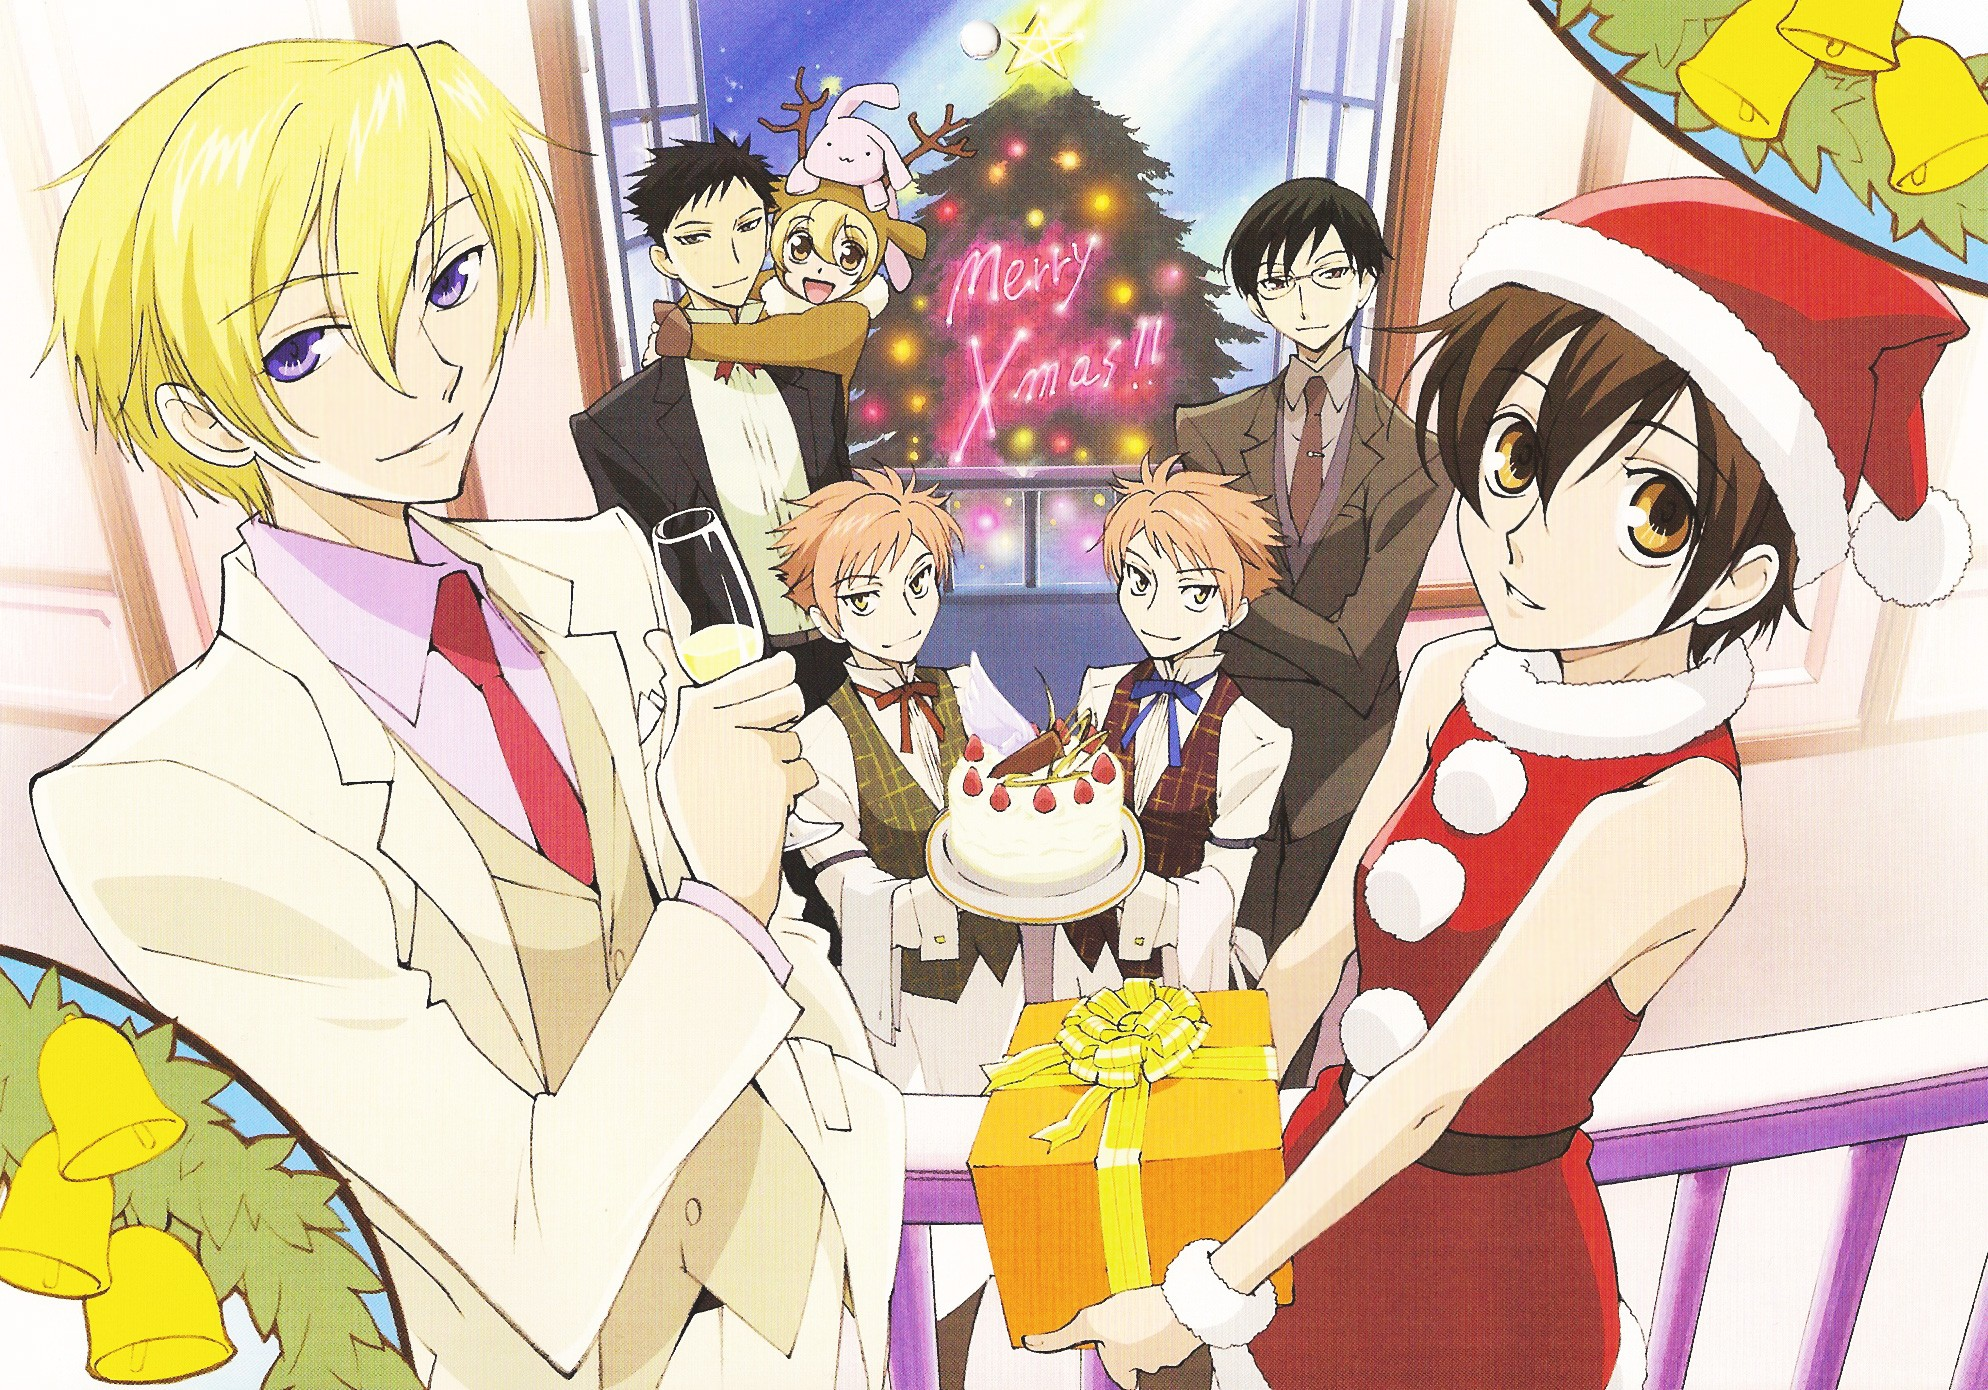 Ouran high school host club rené tamaki richard de grantaine usa